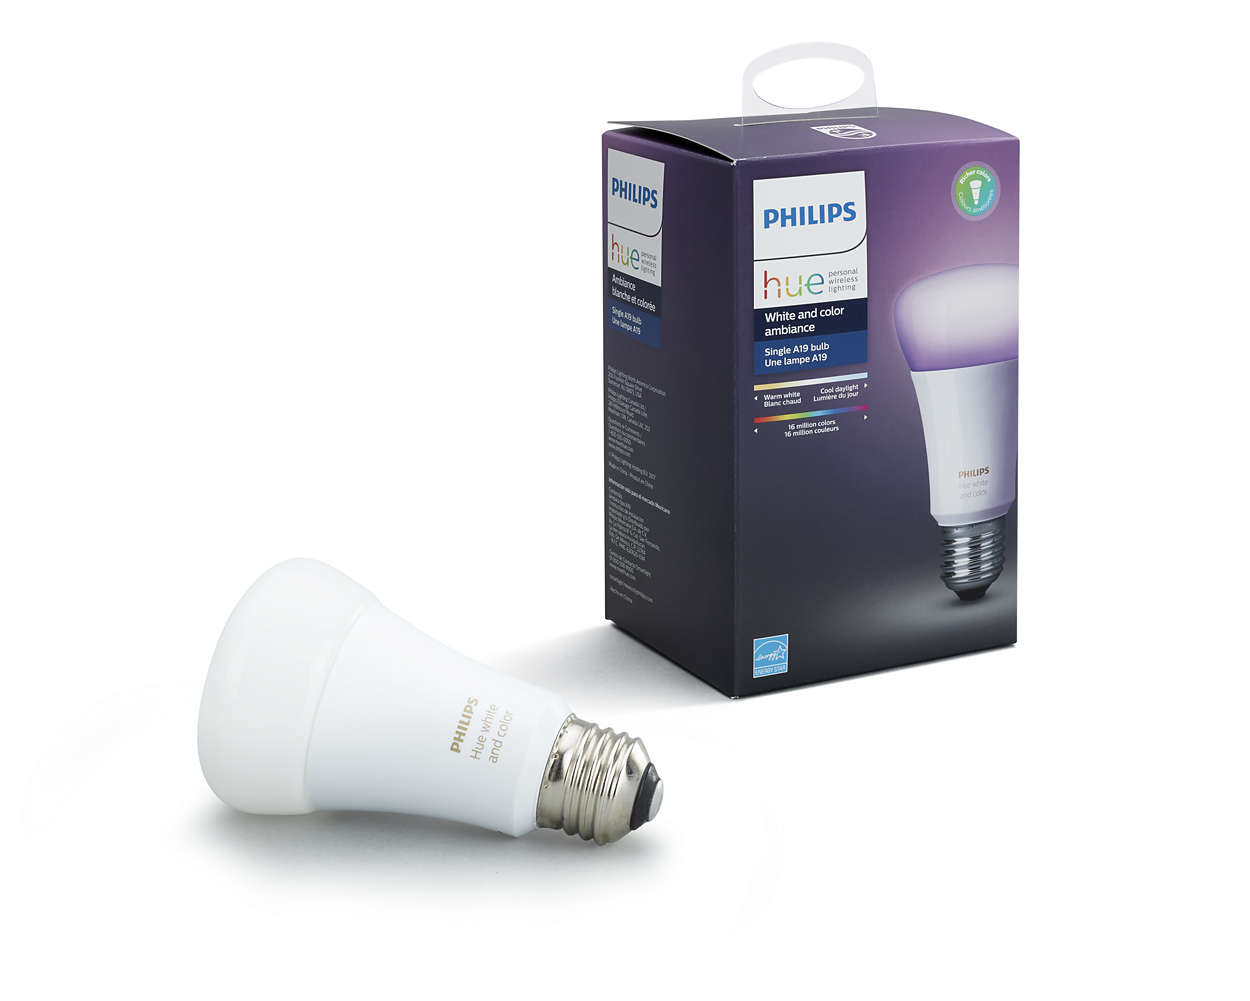 Philips Hub Philips Hue White And Color Ambiance A19 Smart Light Bulb 60w Led 1 Pack